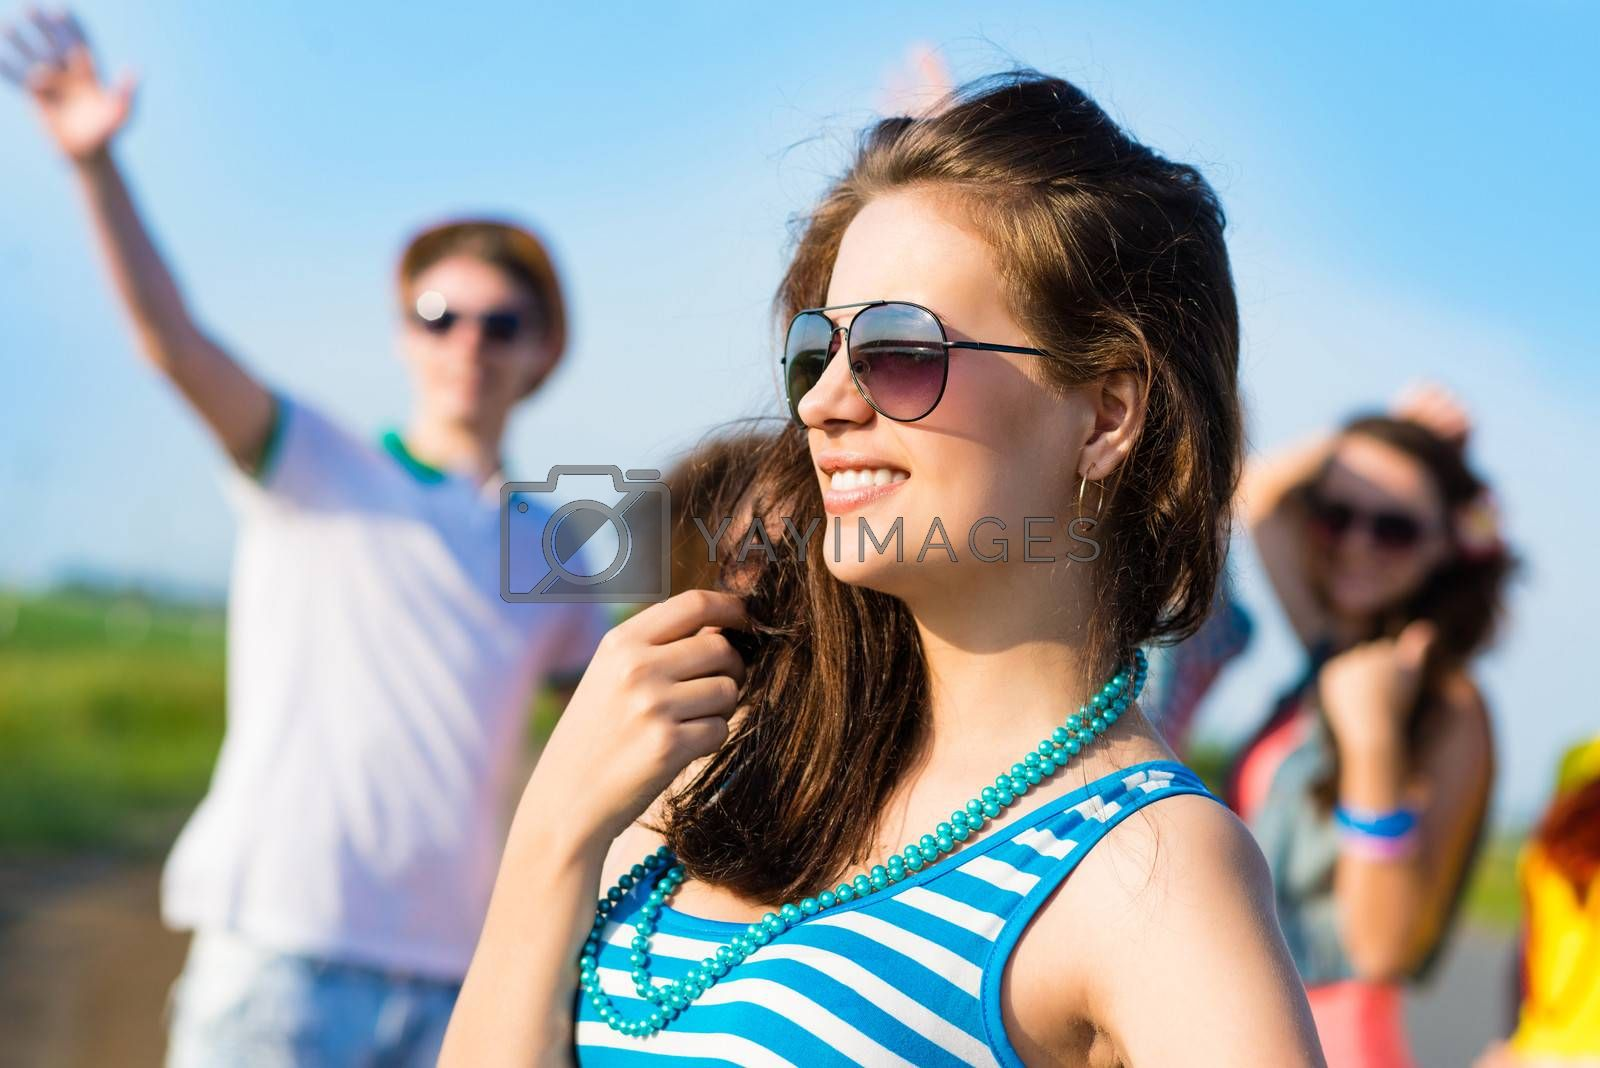 stylish young woman in sunglasses on the background of blue sky and friends